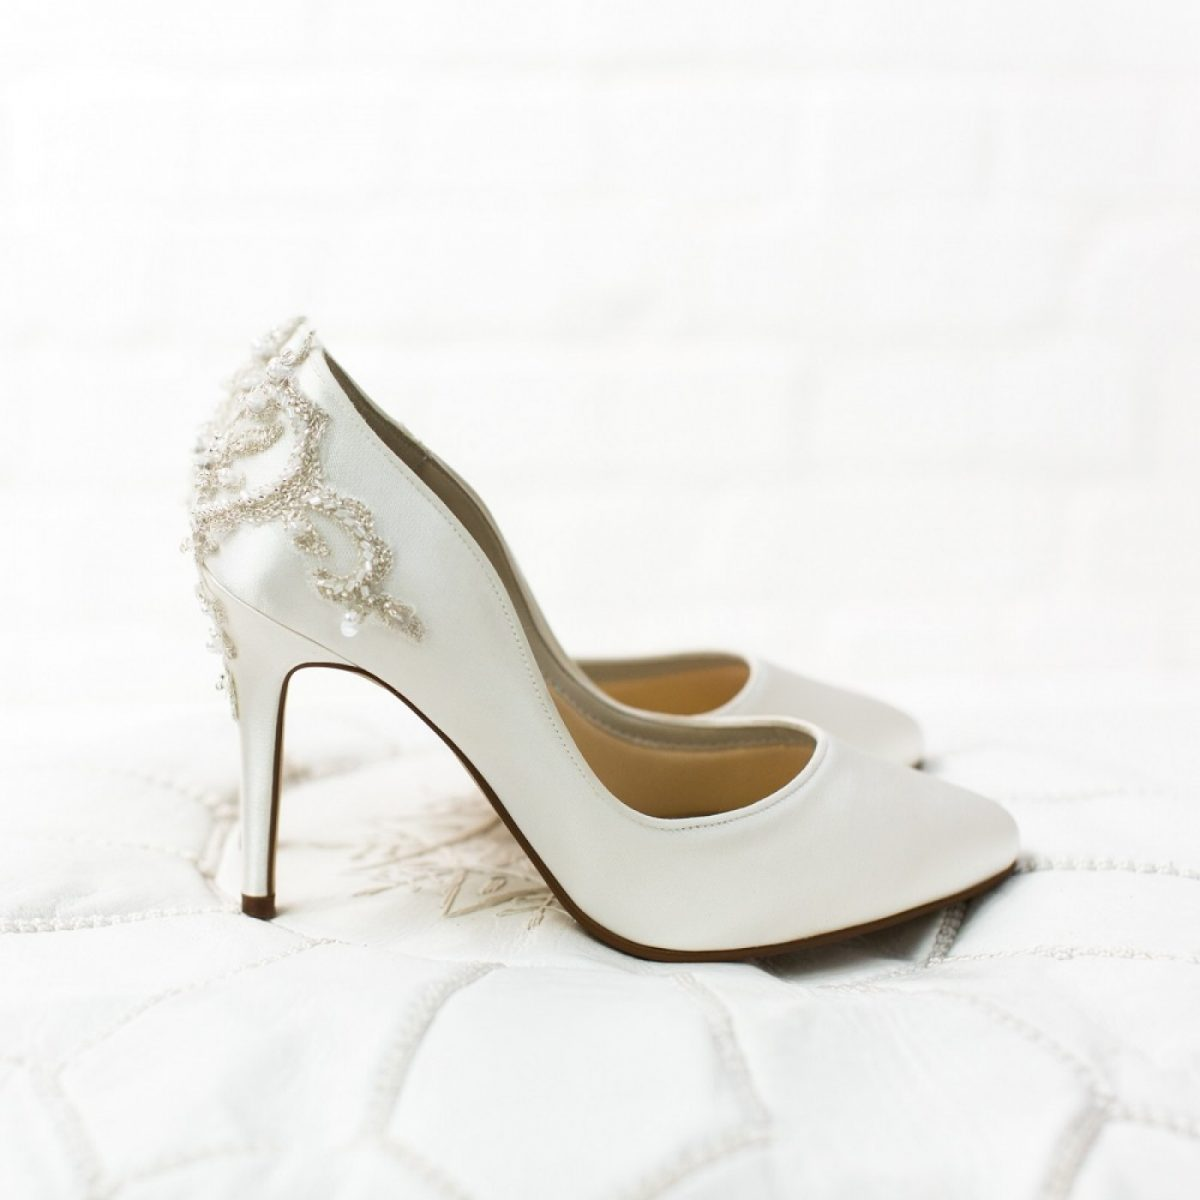 Rainbow Club Willow - Ivory Satin Embellished Heel Court Shoes